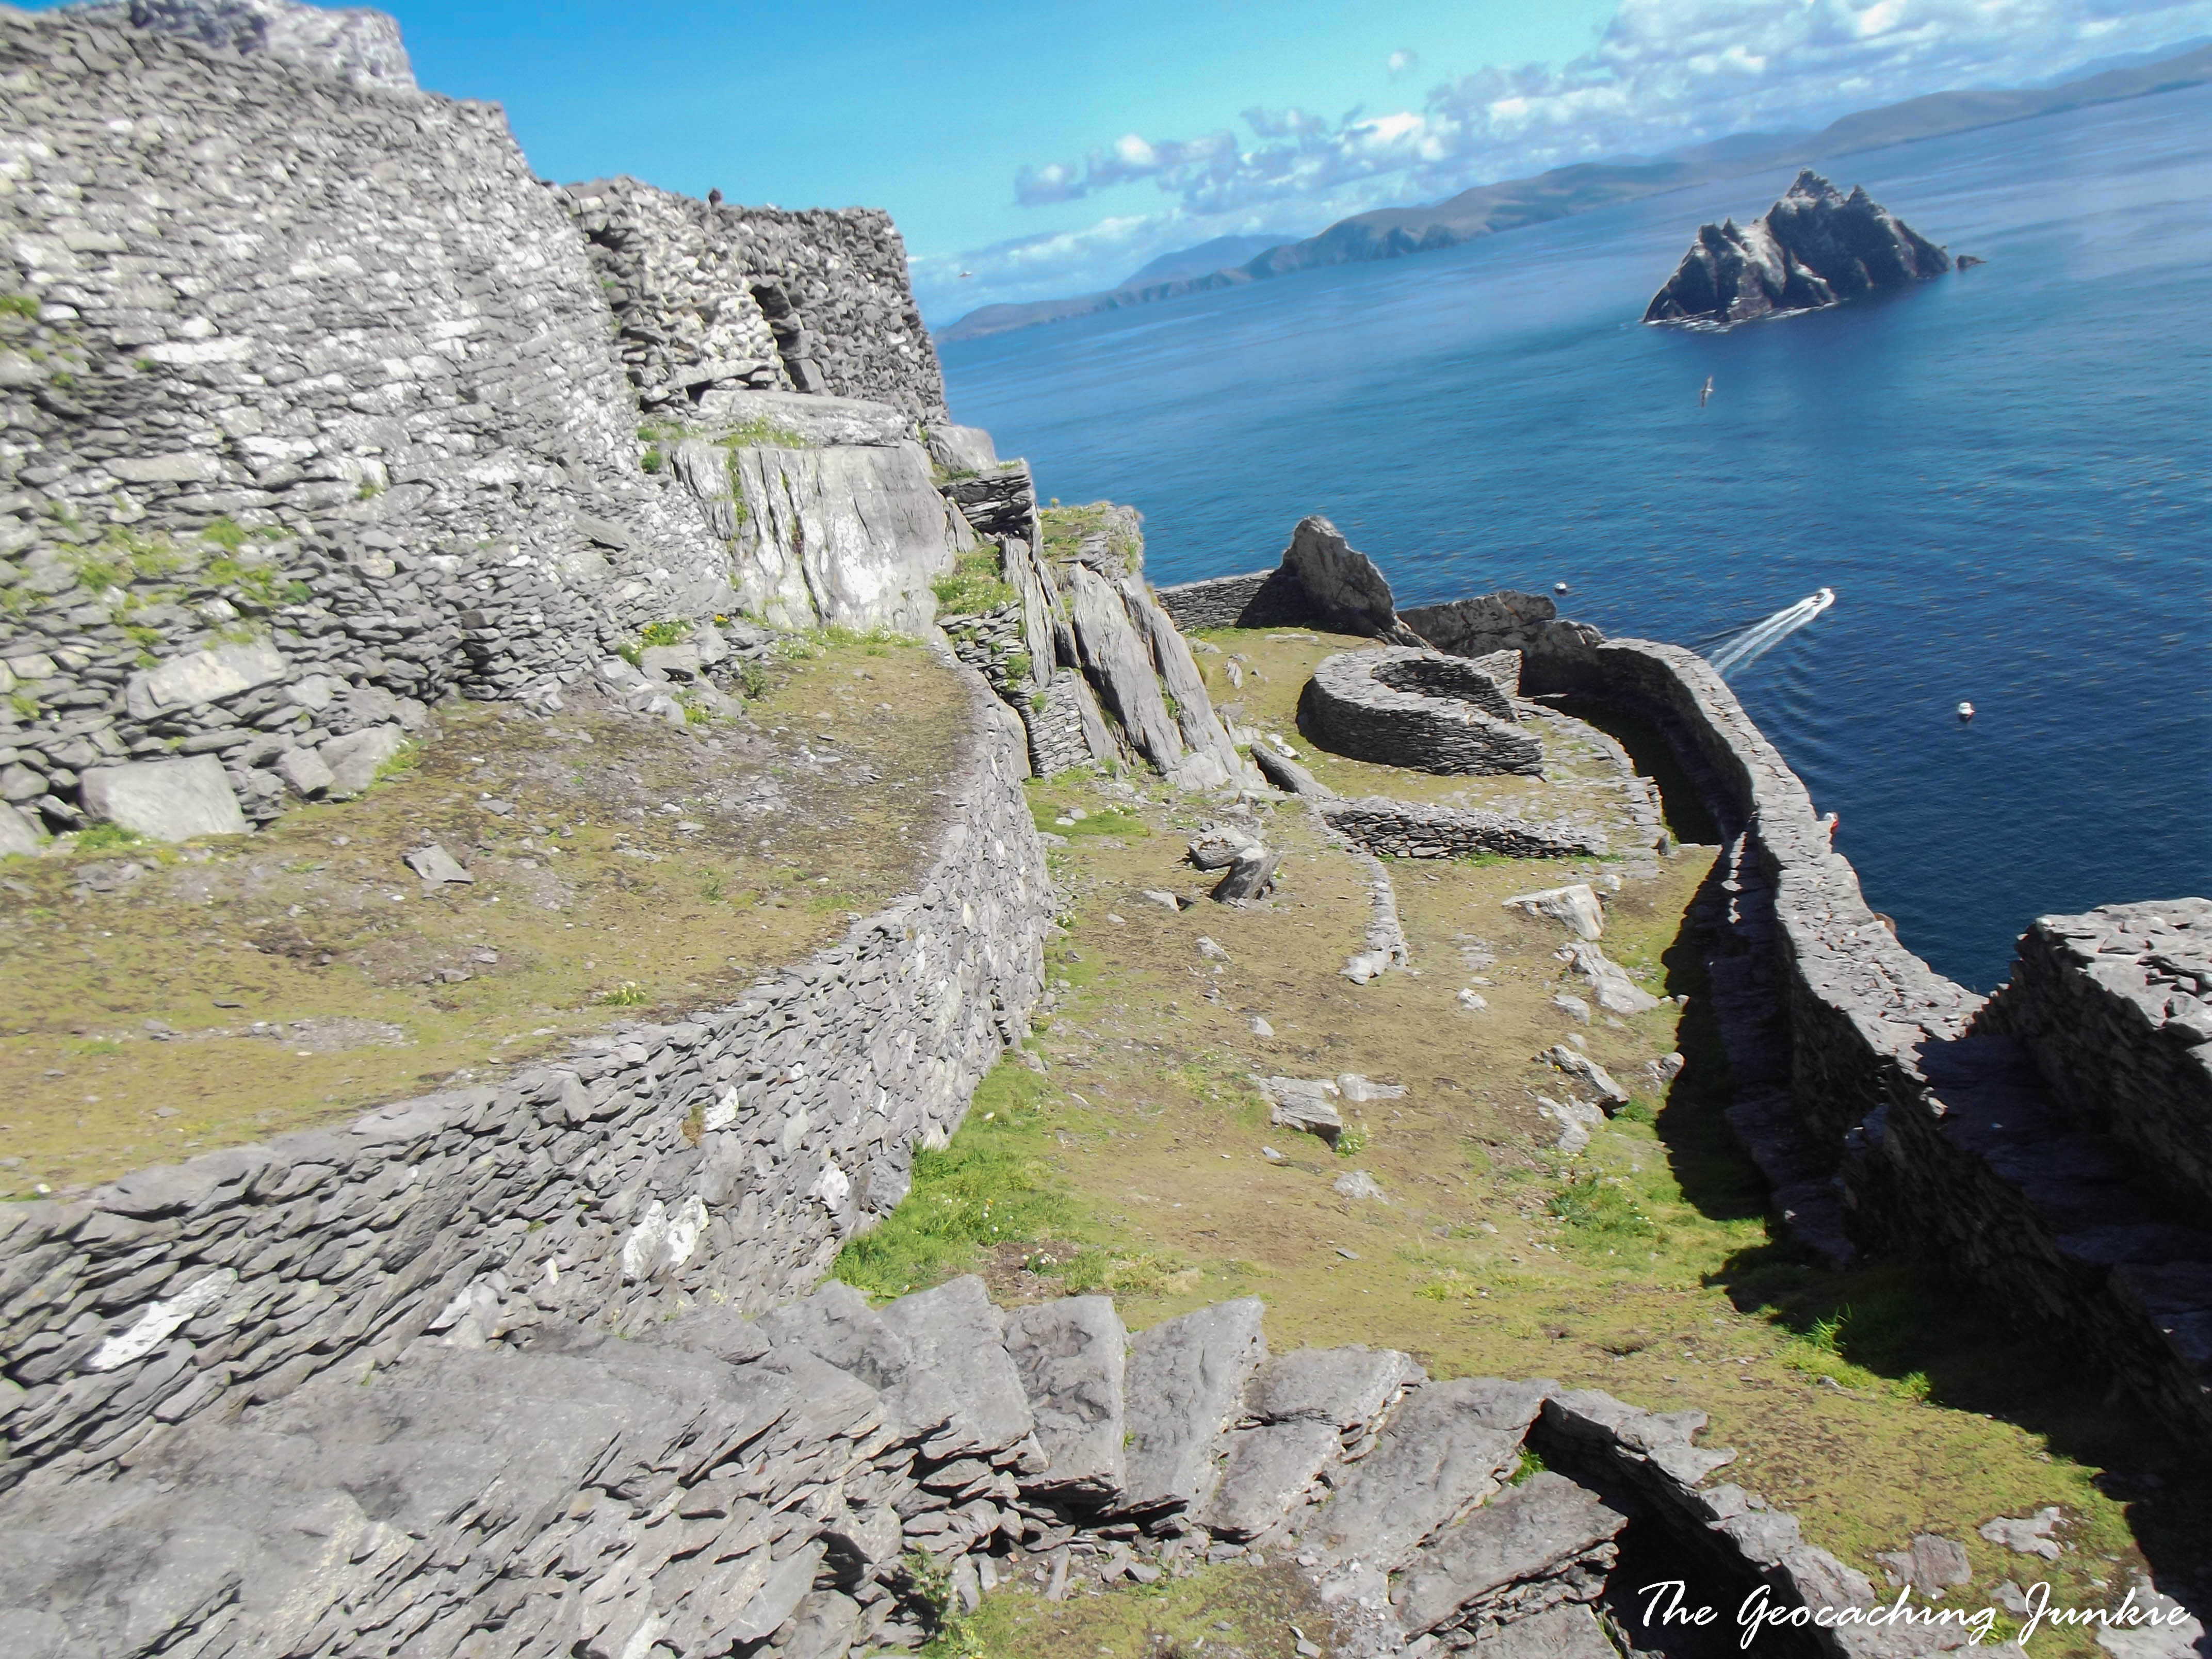 star wars filming location skellig michael-7644